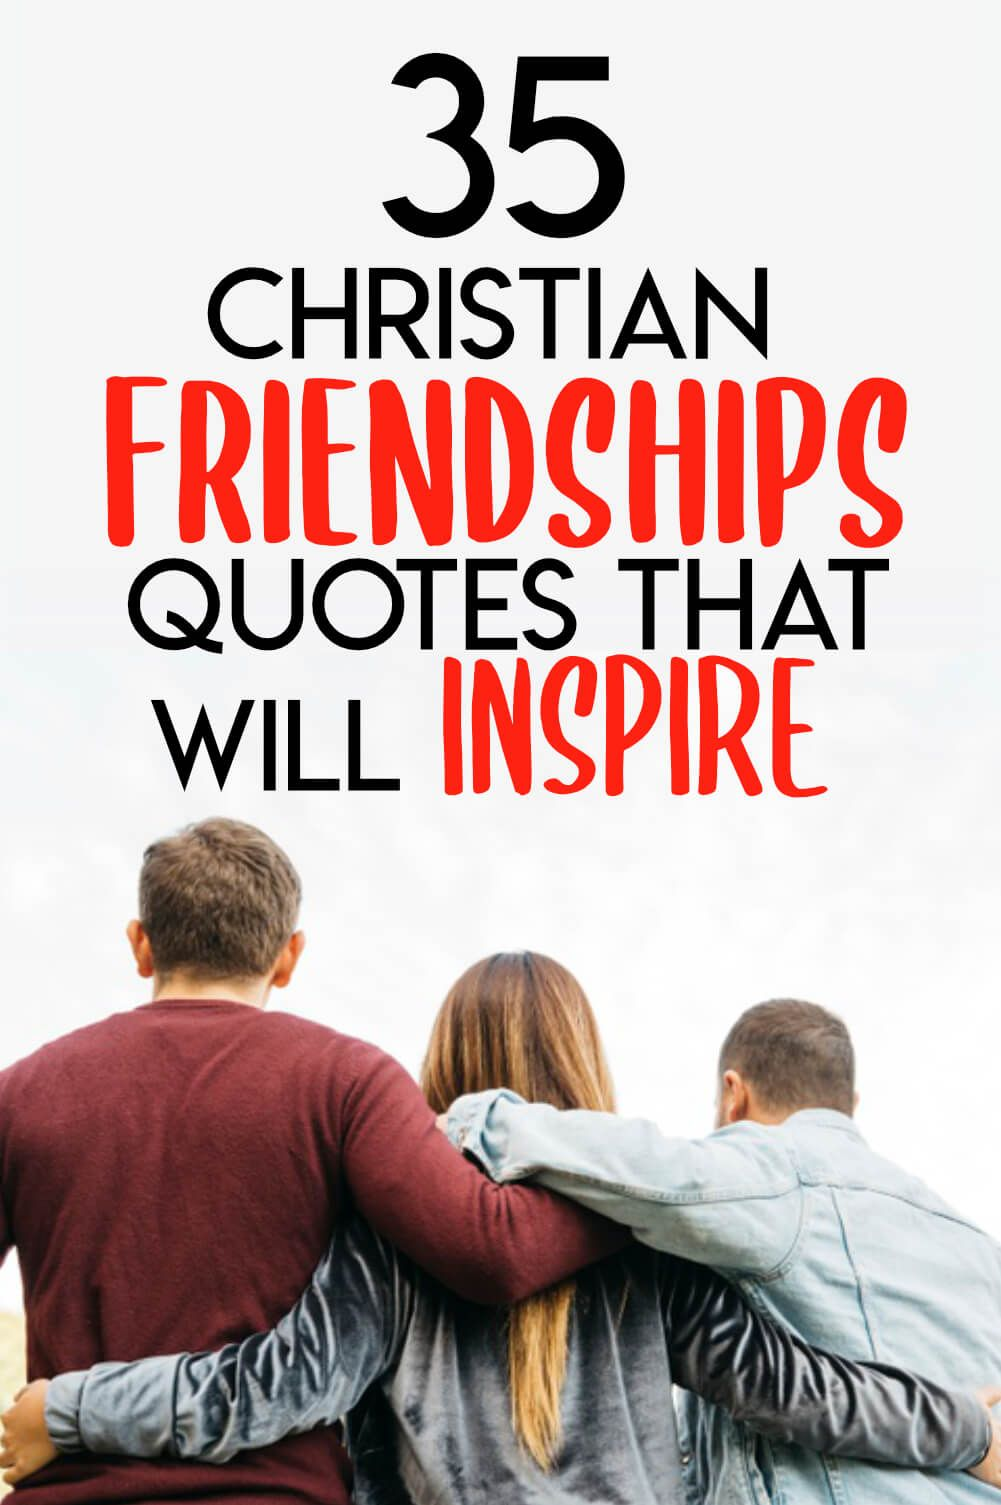 35 Christian Friendship Quotes That Will Inspire